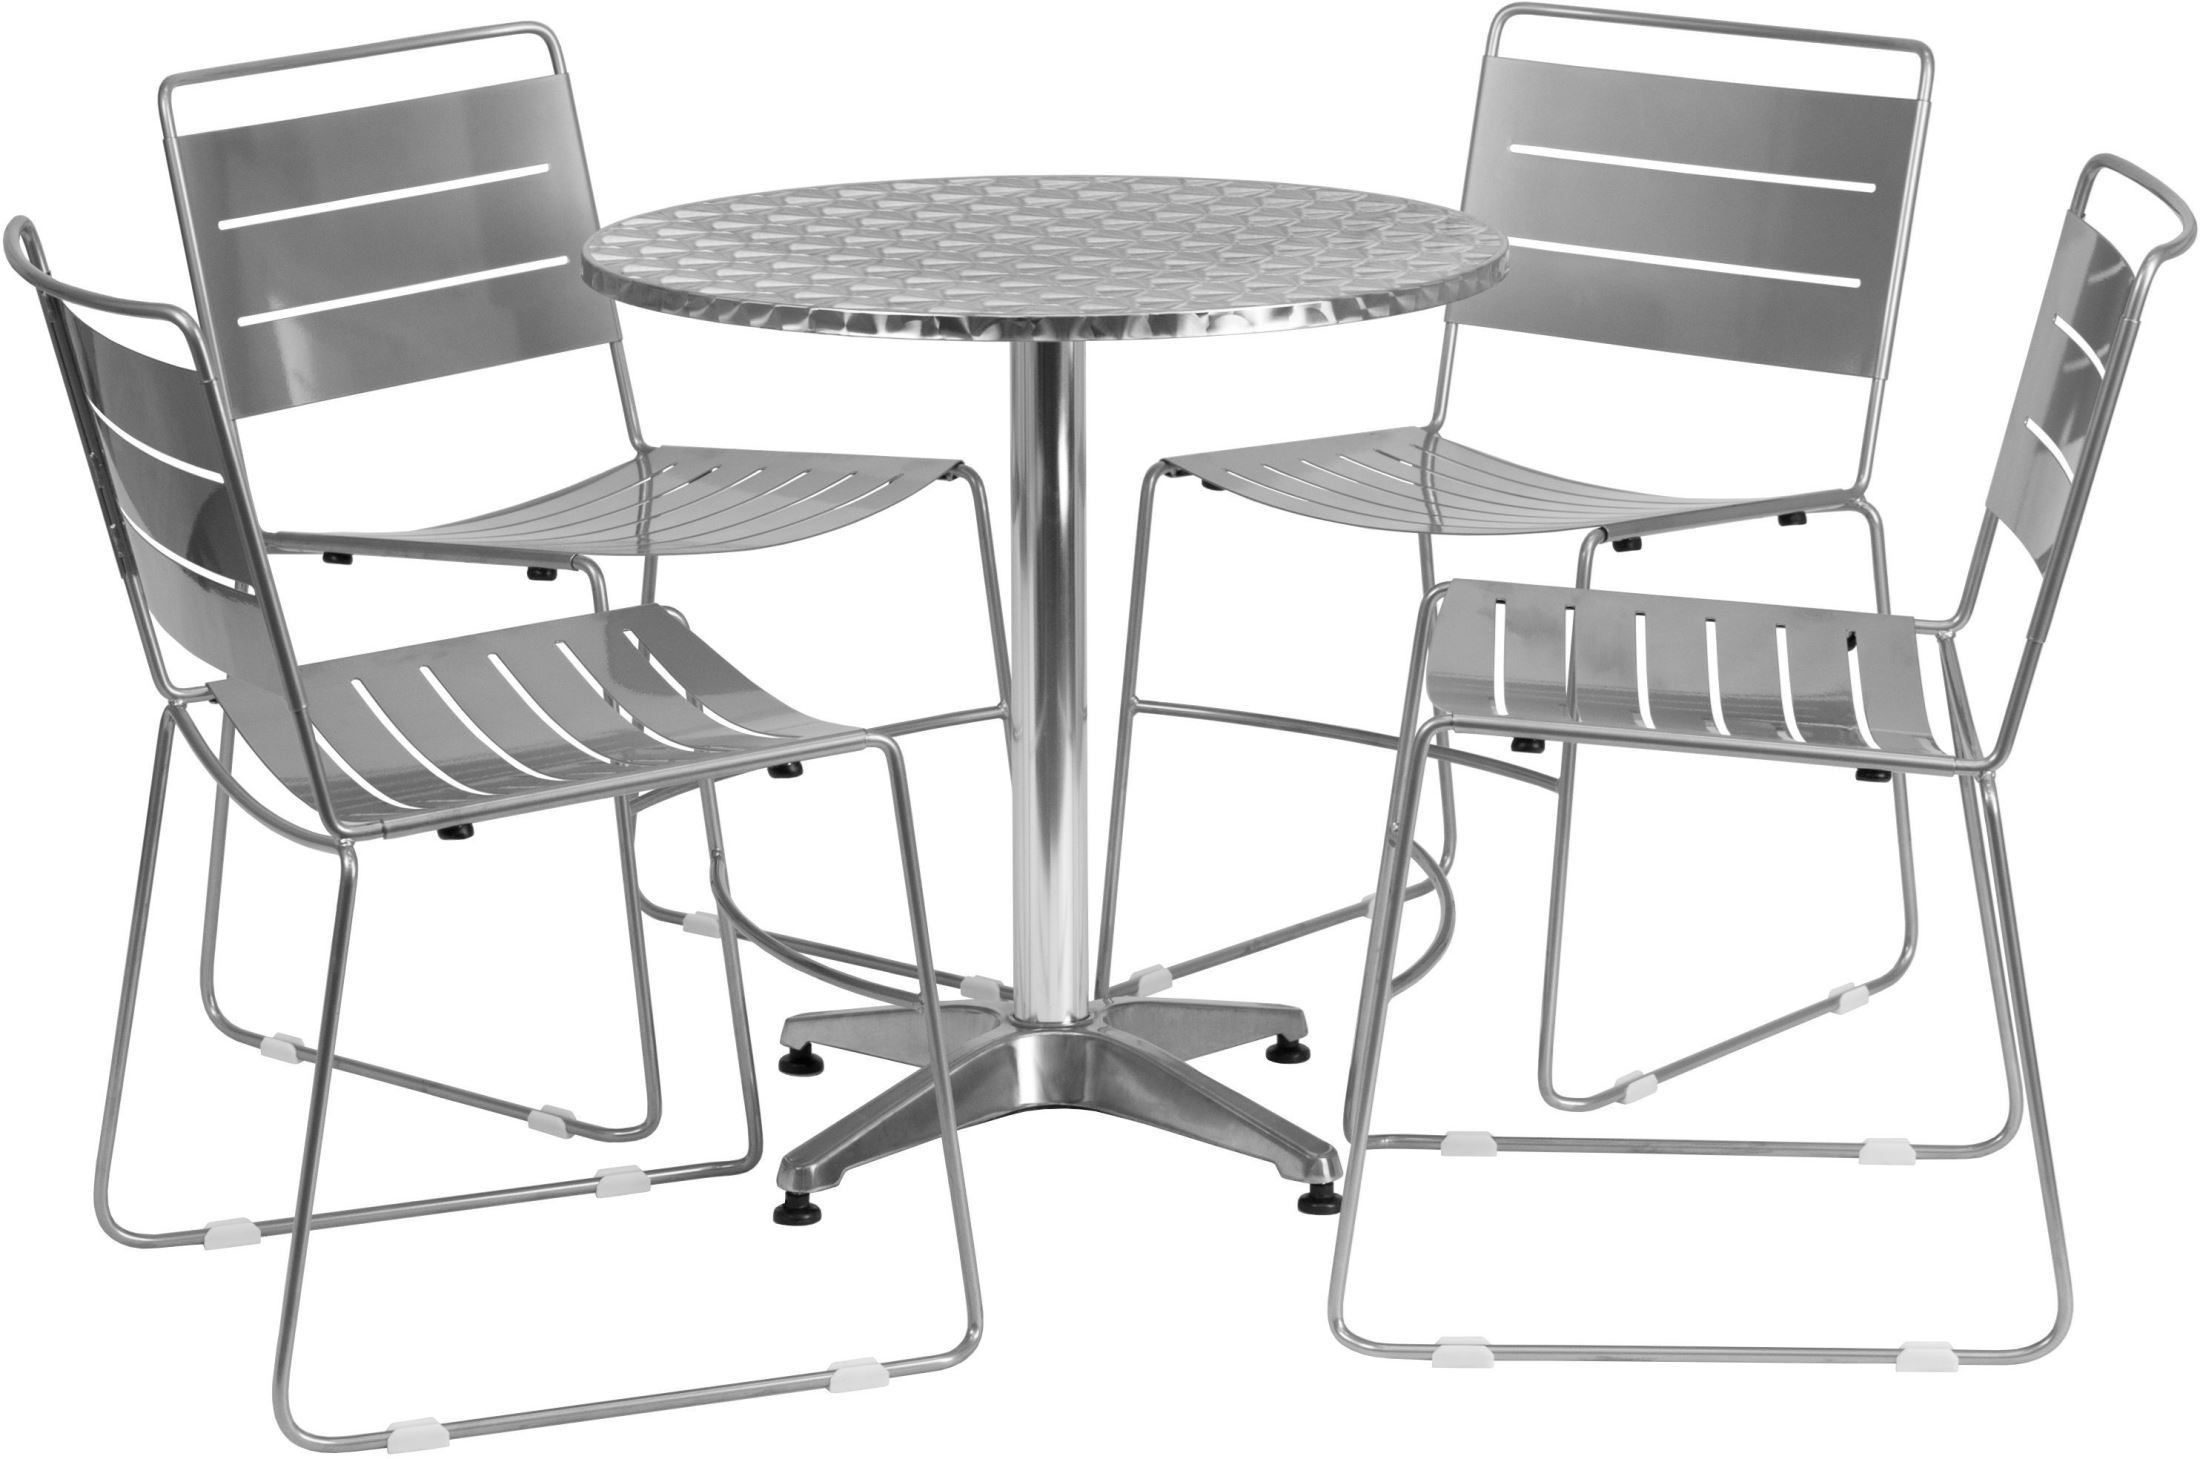 metal stacking chairs outdoor strathwood anti gravity chair 27 5 quot round aluminum indoor table with 4 silver